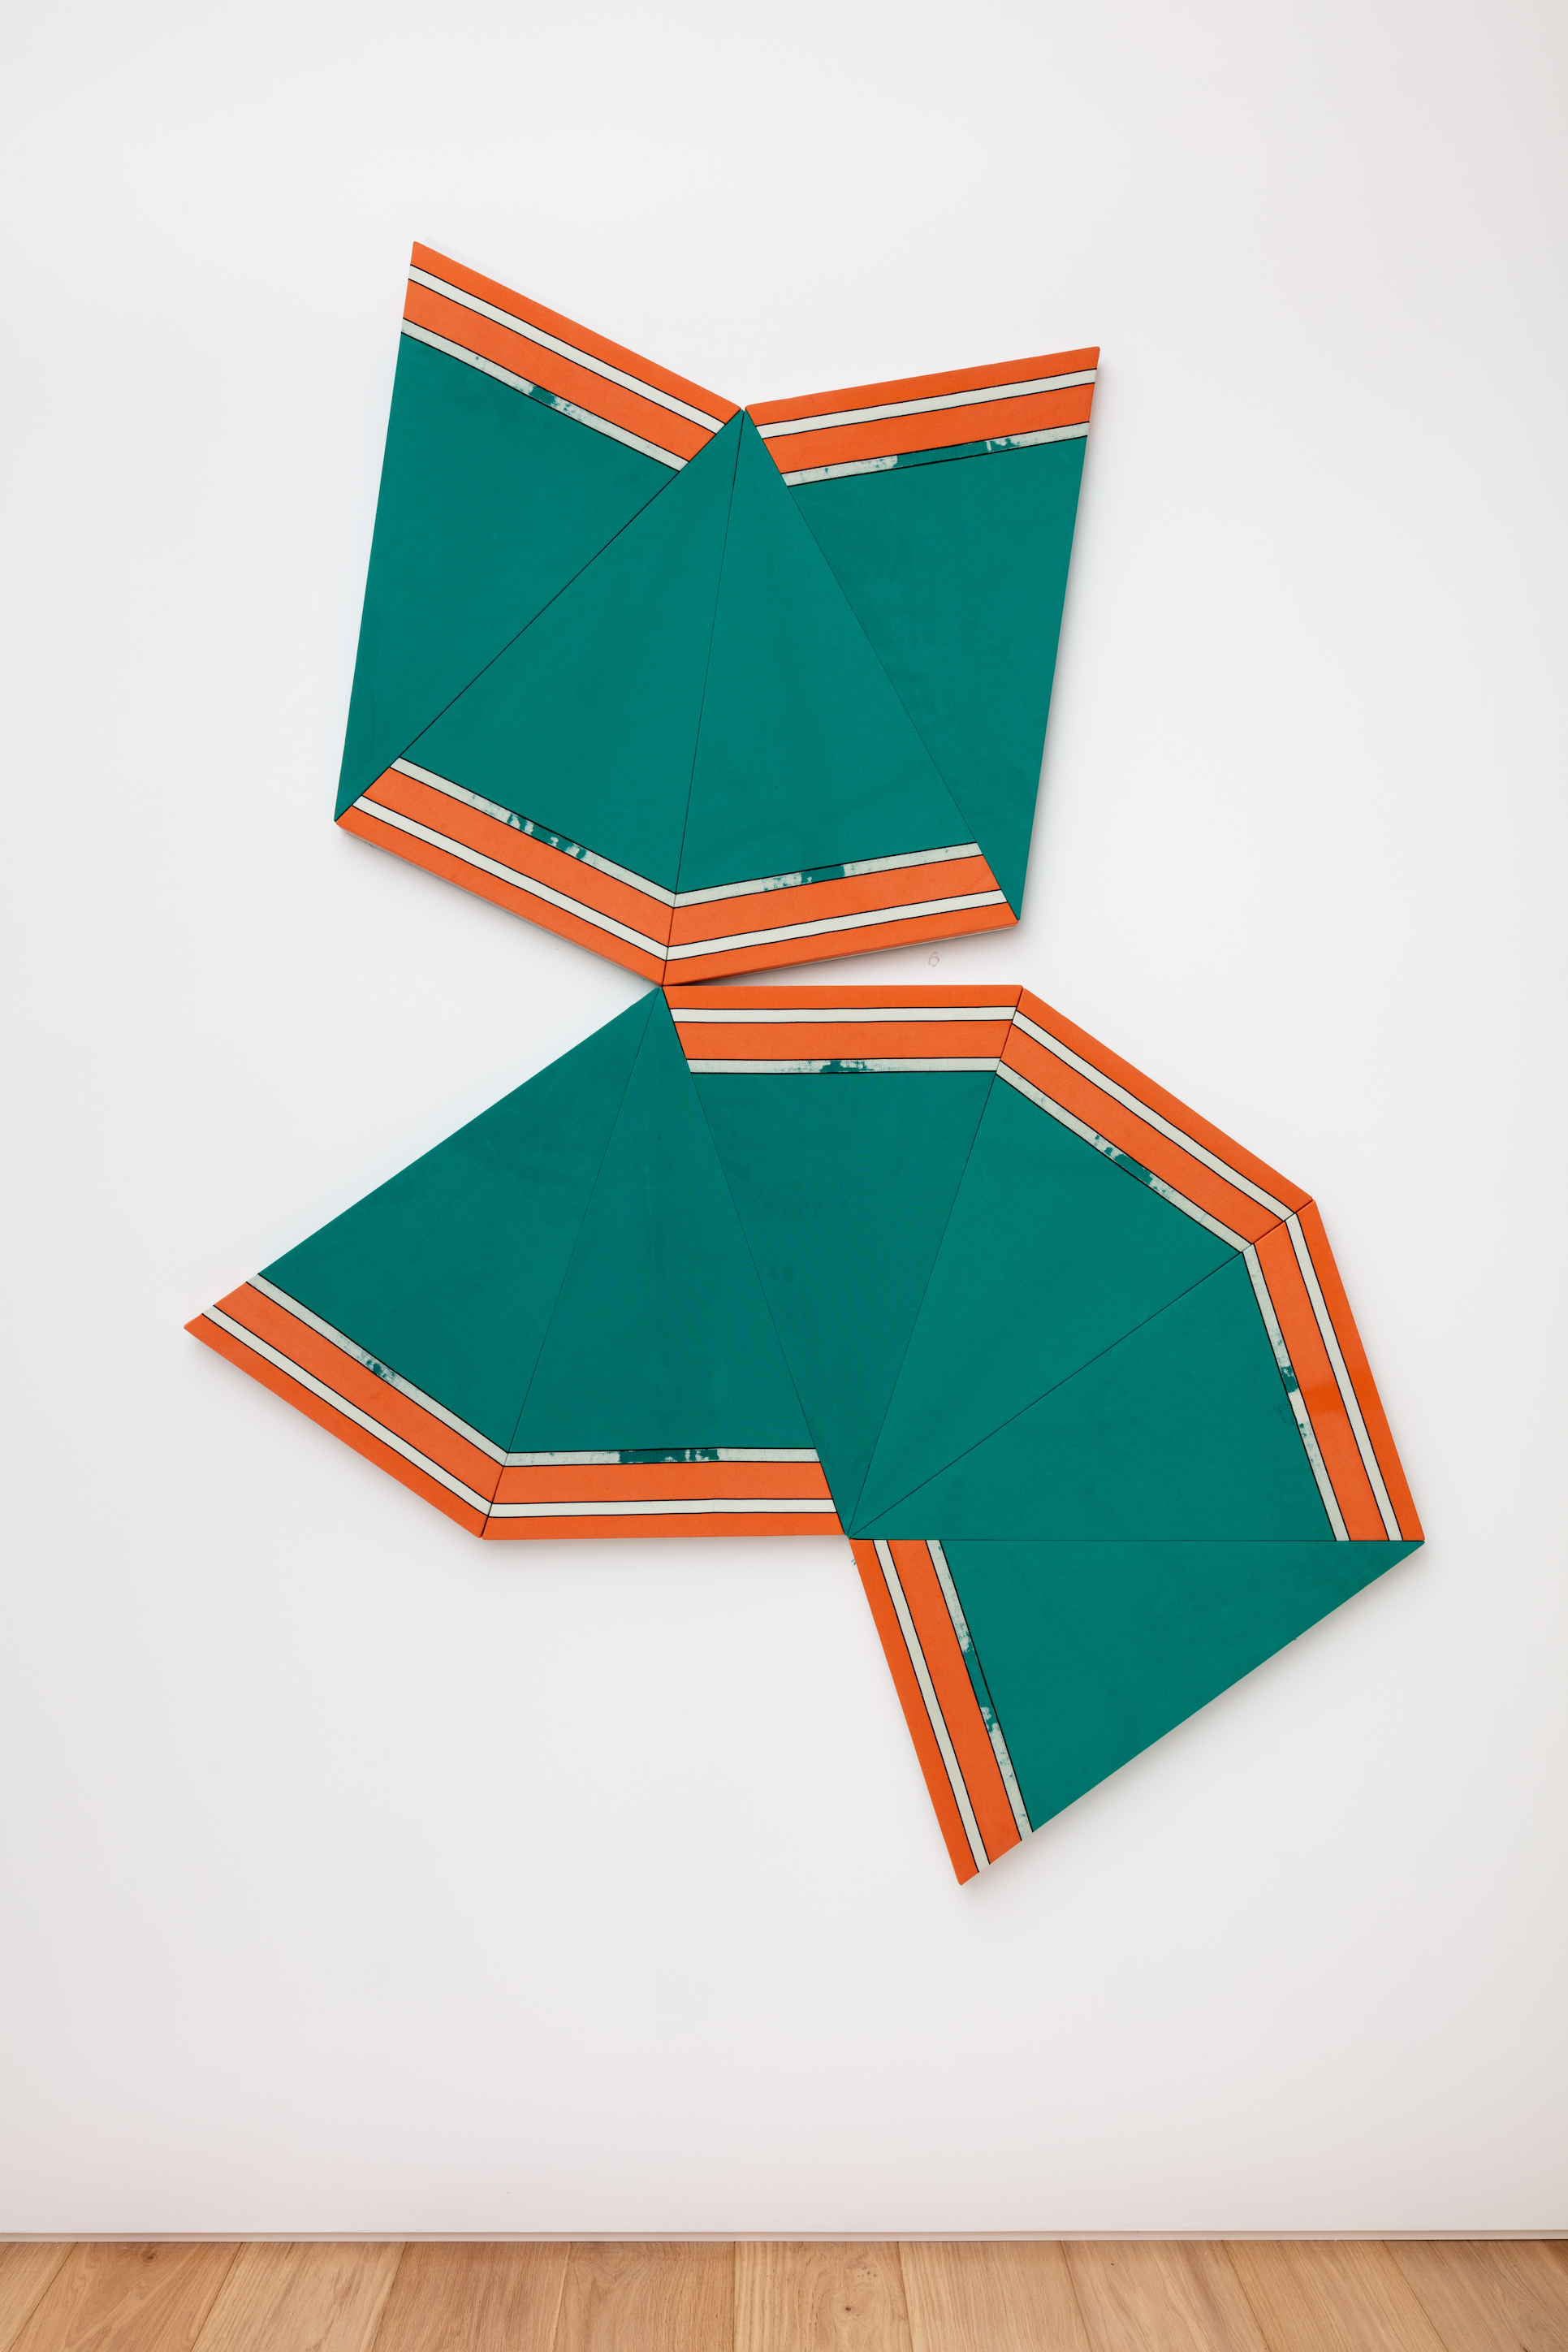 Alek O. Tangram (Lying Down Cat), 2015 Stretched synthetic fabric from a parasol 224 x 170 cm